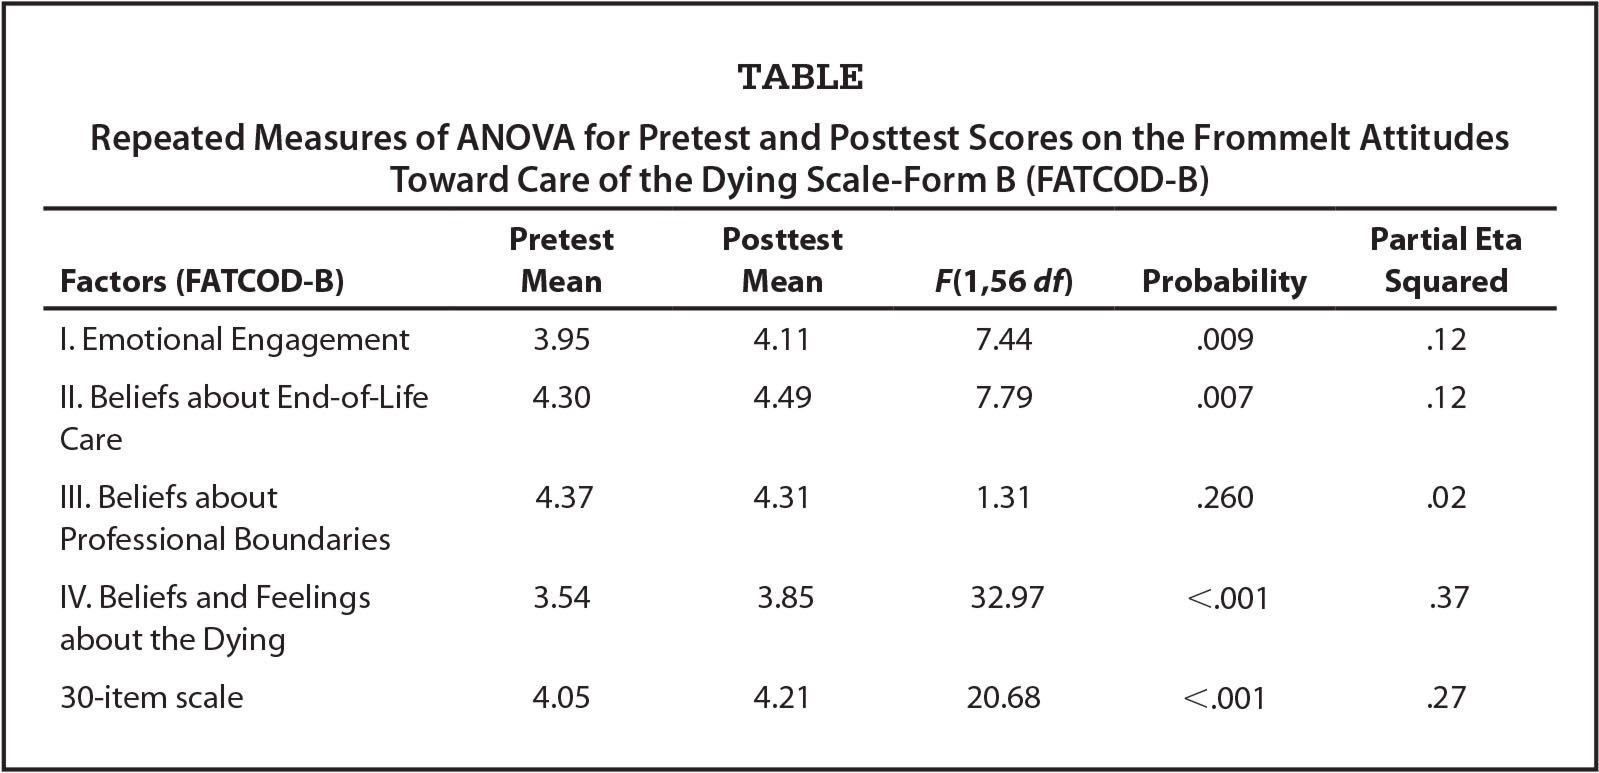 Repeated Measures of ANOVA for Pretest and Posttest Scores on the Frommelt Attitudes Toward Care of the Dying Scale-Form B (FATCOD-B)